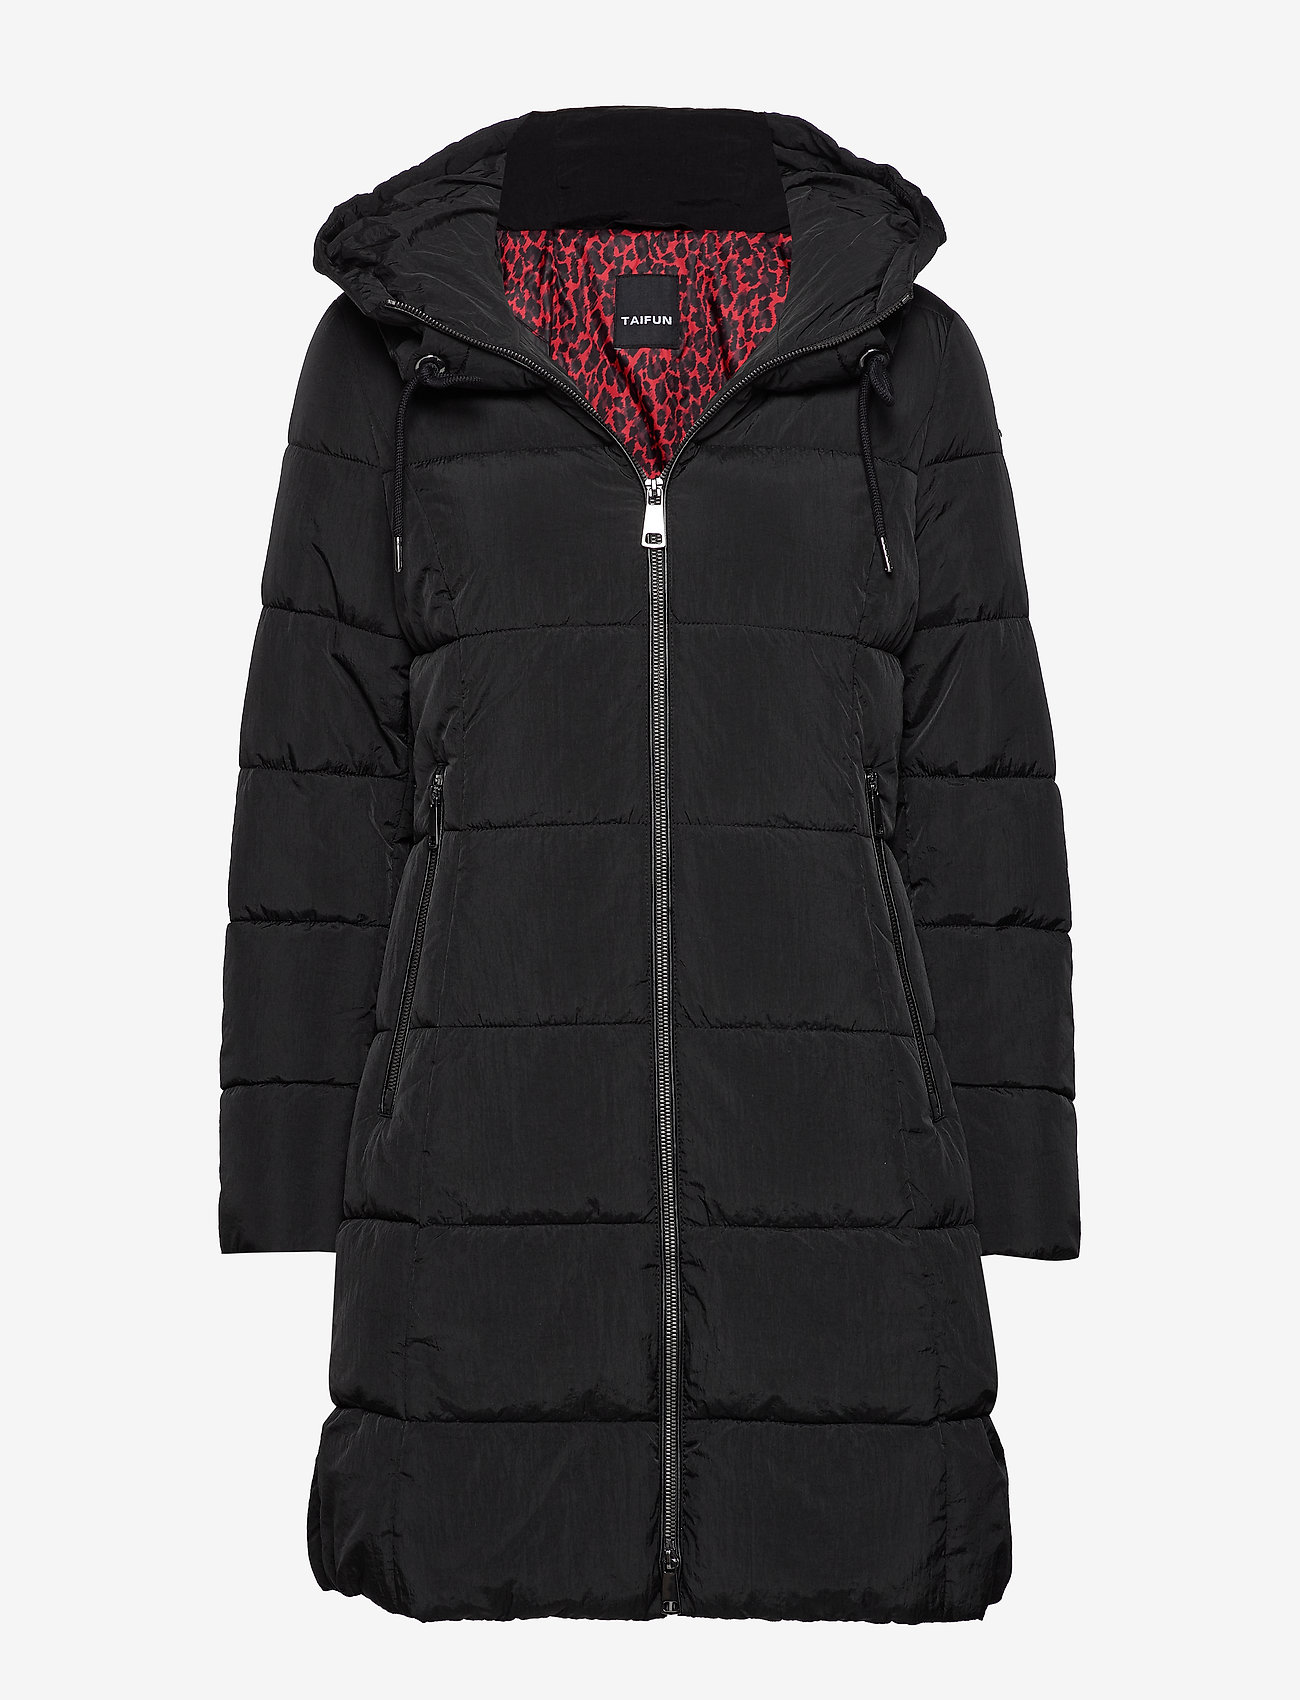 Taifun - OUTDOOR JACKET NO WO - dunkappor - black - 0